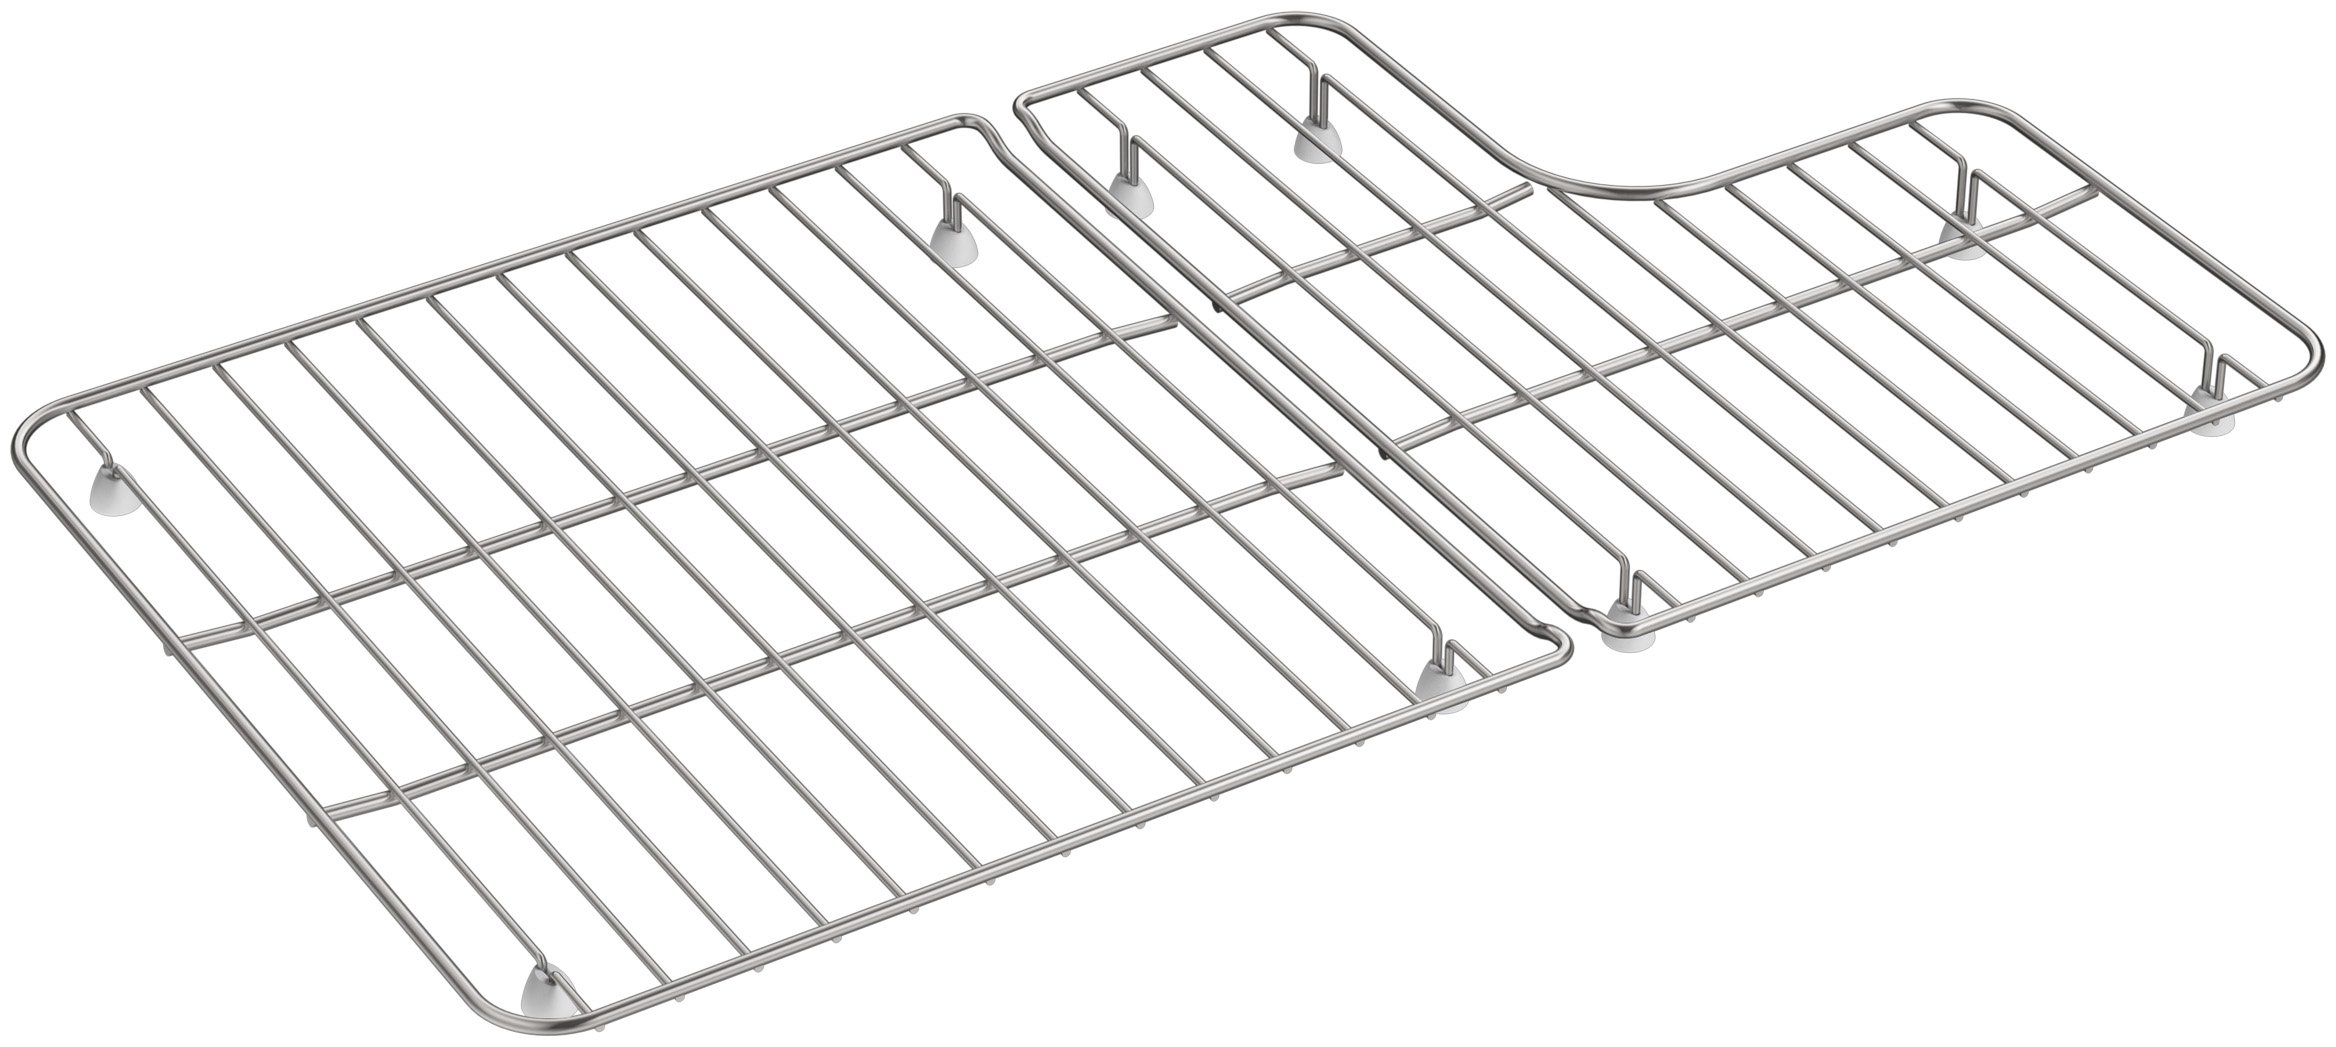 KOHLER 6449-ST Sink Racks for Whitehaven K-5826 and K-5827 Sinks, Stainless Steel